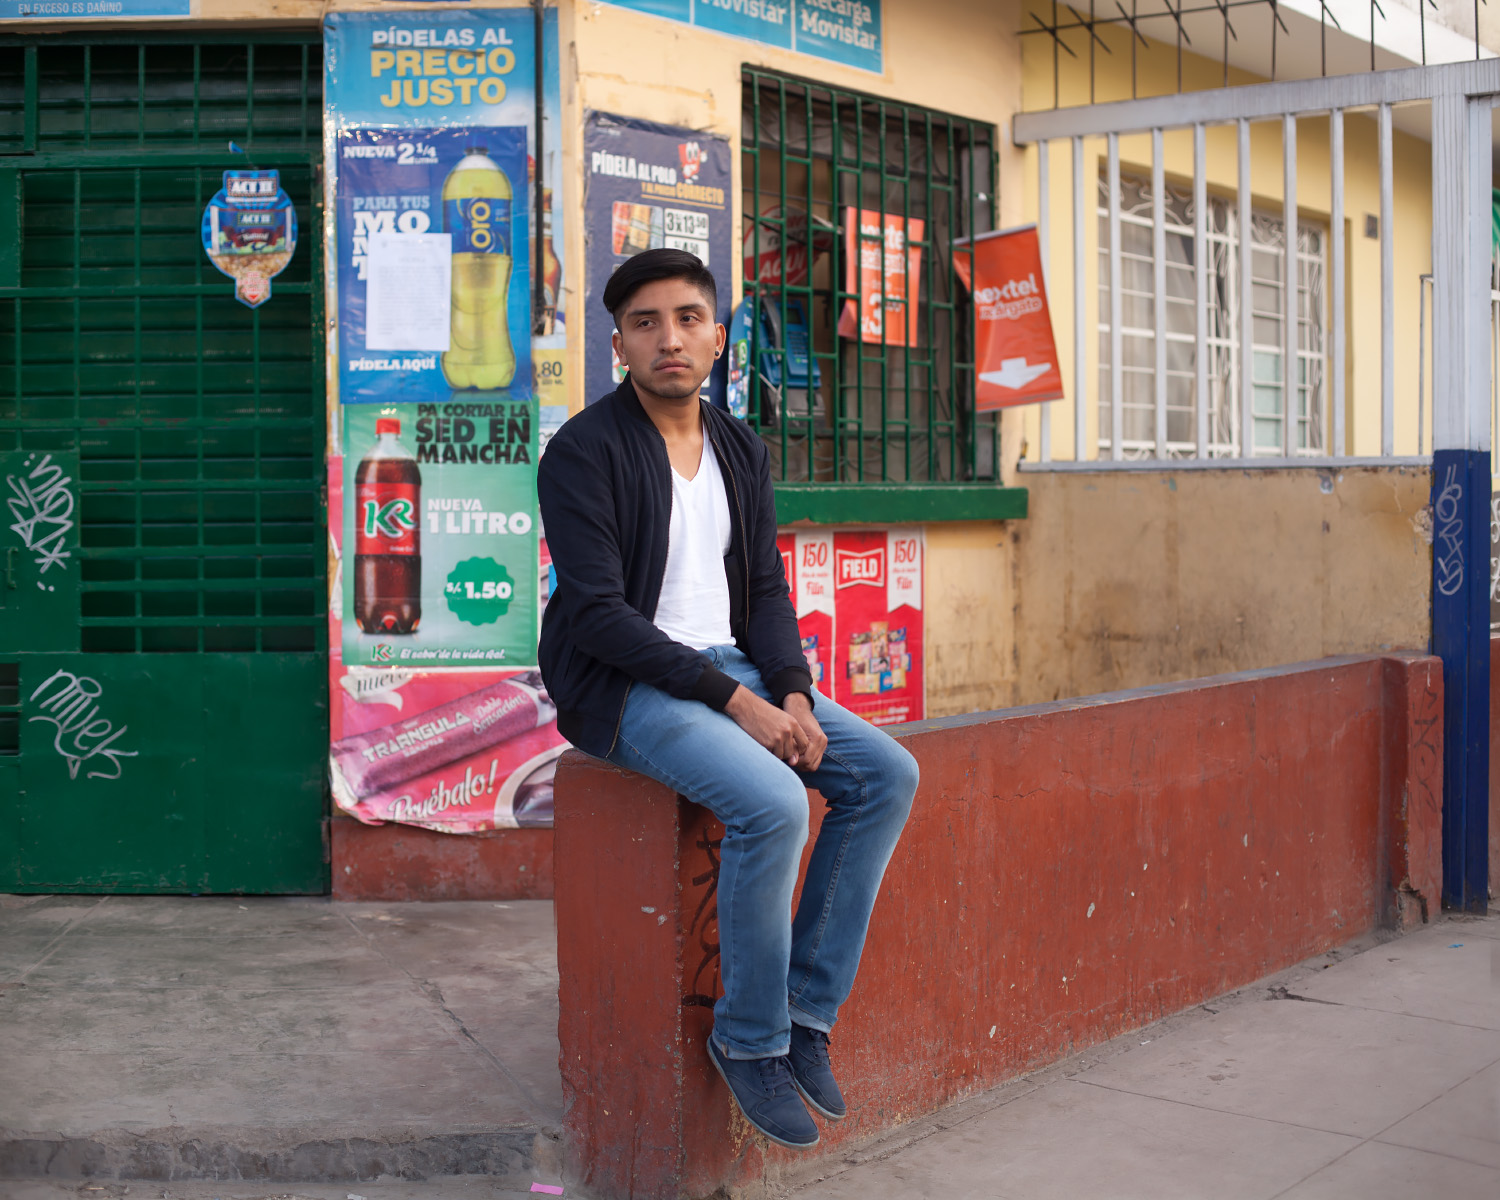 peru single gay men Looking for peru disabled men browse the profile previews below to see your ideal partner start a conversation and arrange to meet up tonight we have thousands of.